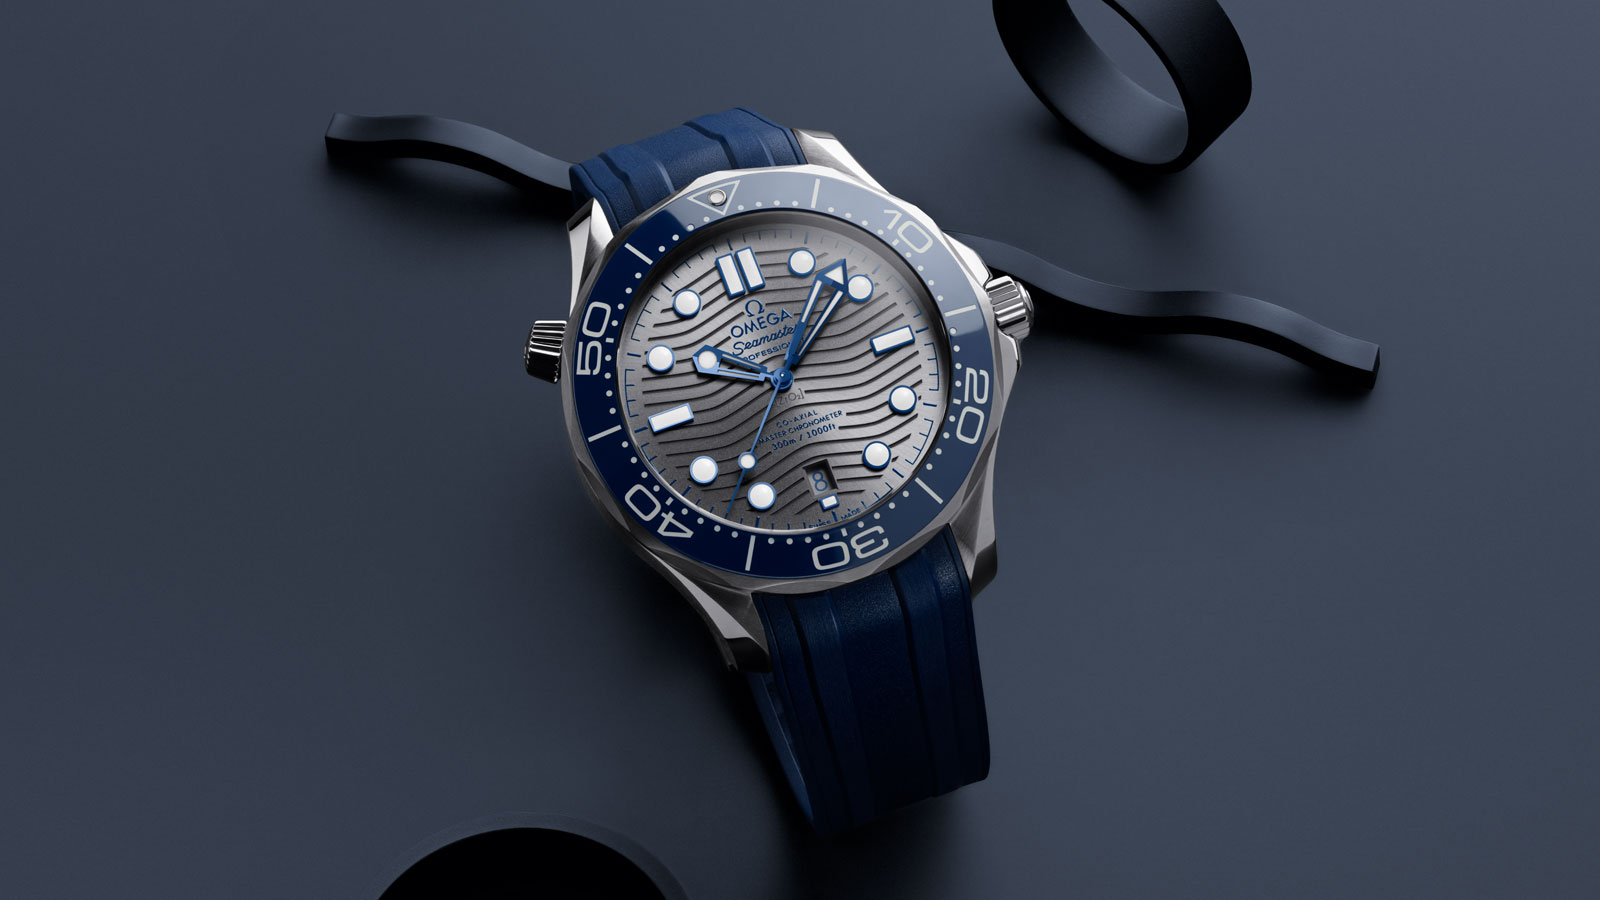 Seamaster Diver 300 M Diver 300M Omega Co‑Axial Master Chronometer 42 mm - 210.32.42.20.06.001 - Afficher 1